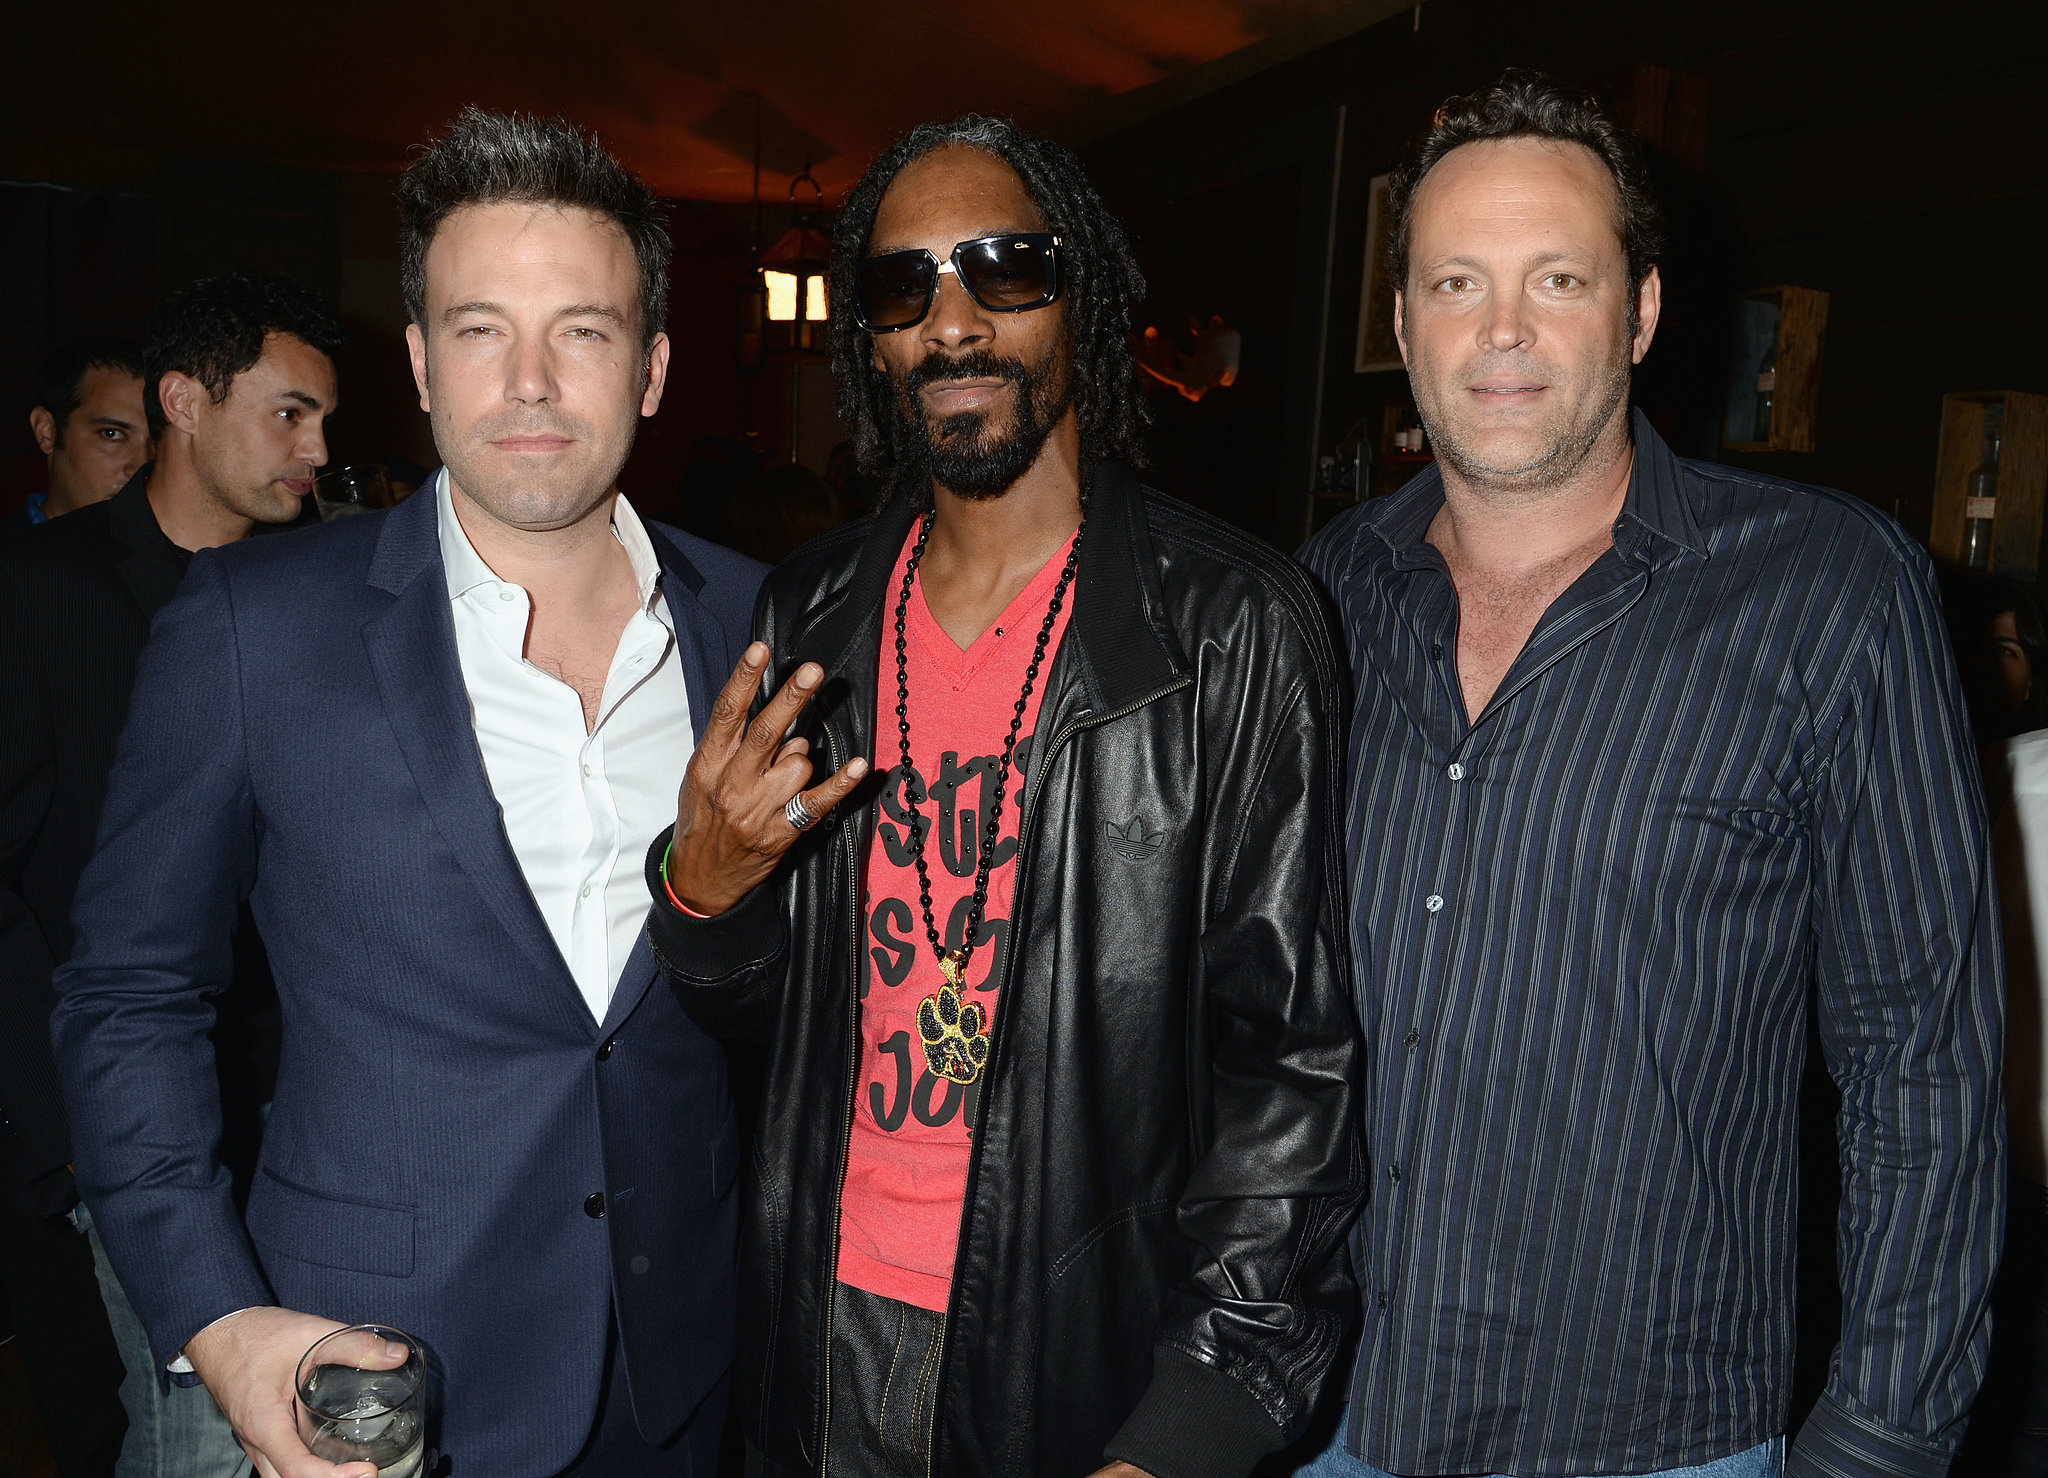 Ben Affleck partied with Snoop Dogg and Vince Vaughn.